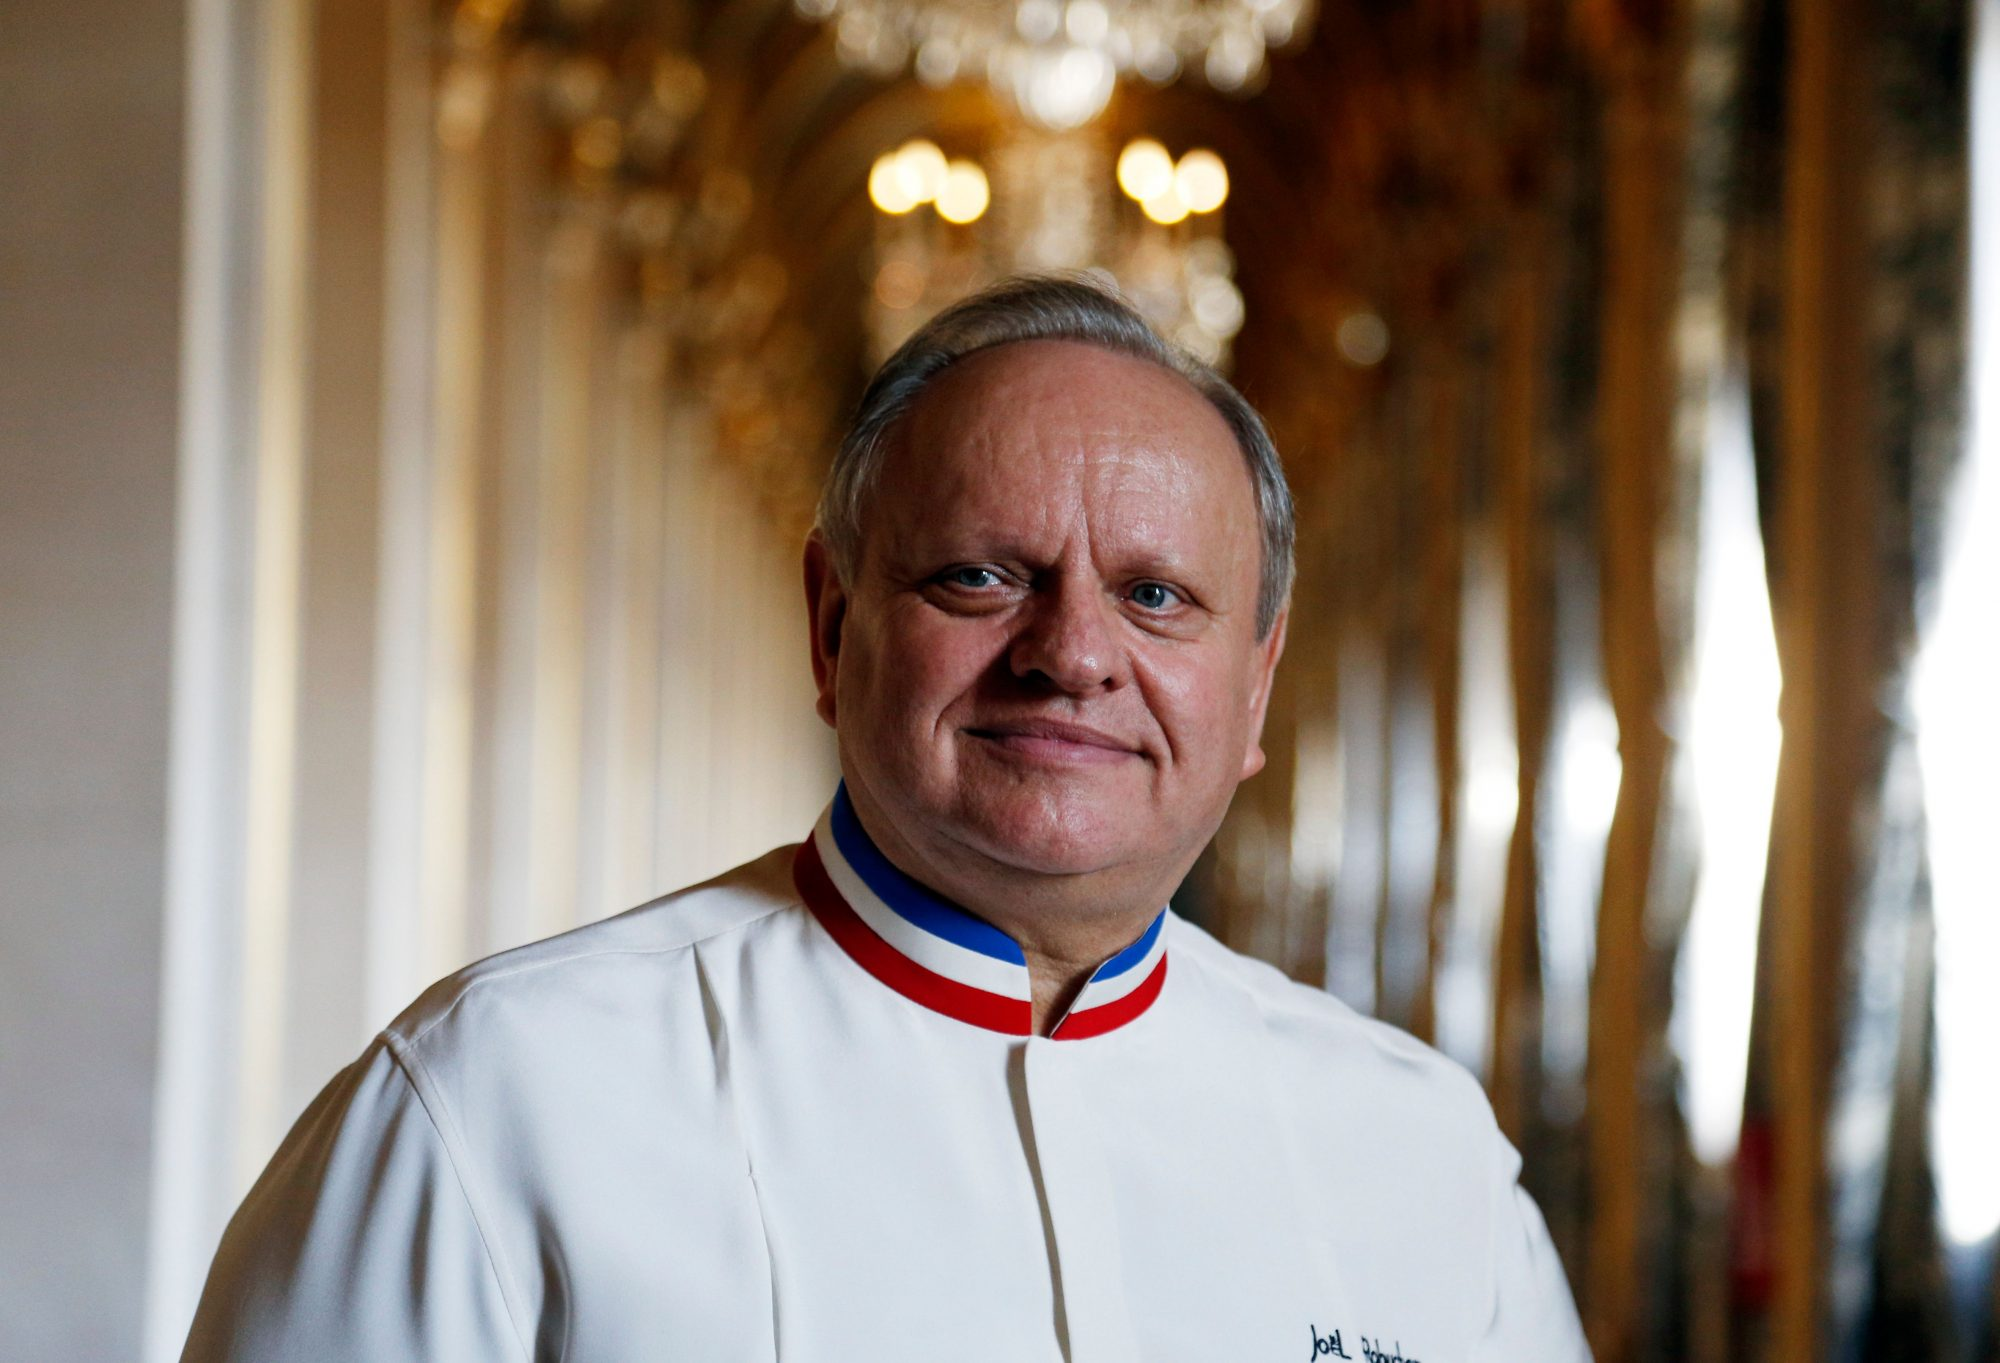 Remembering Joël Robuchon: Chefs React to the Death of a Culinary Giant